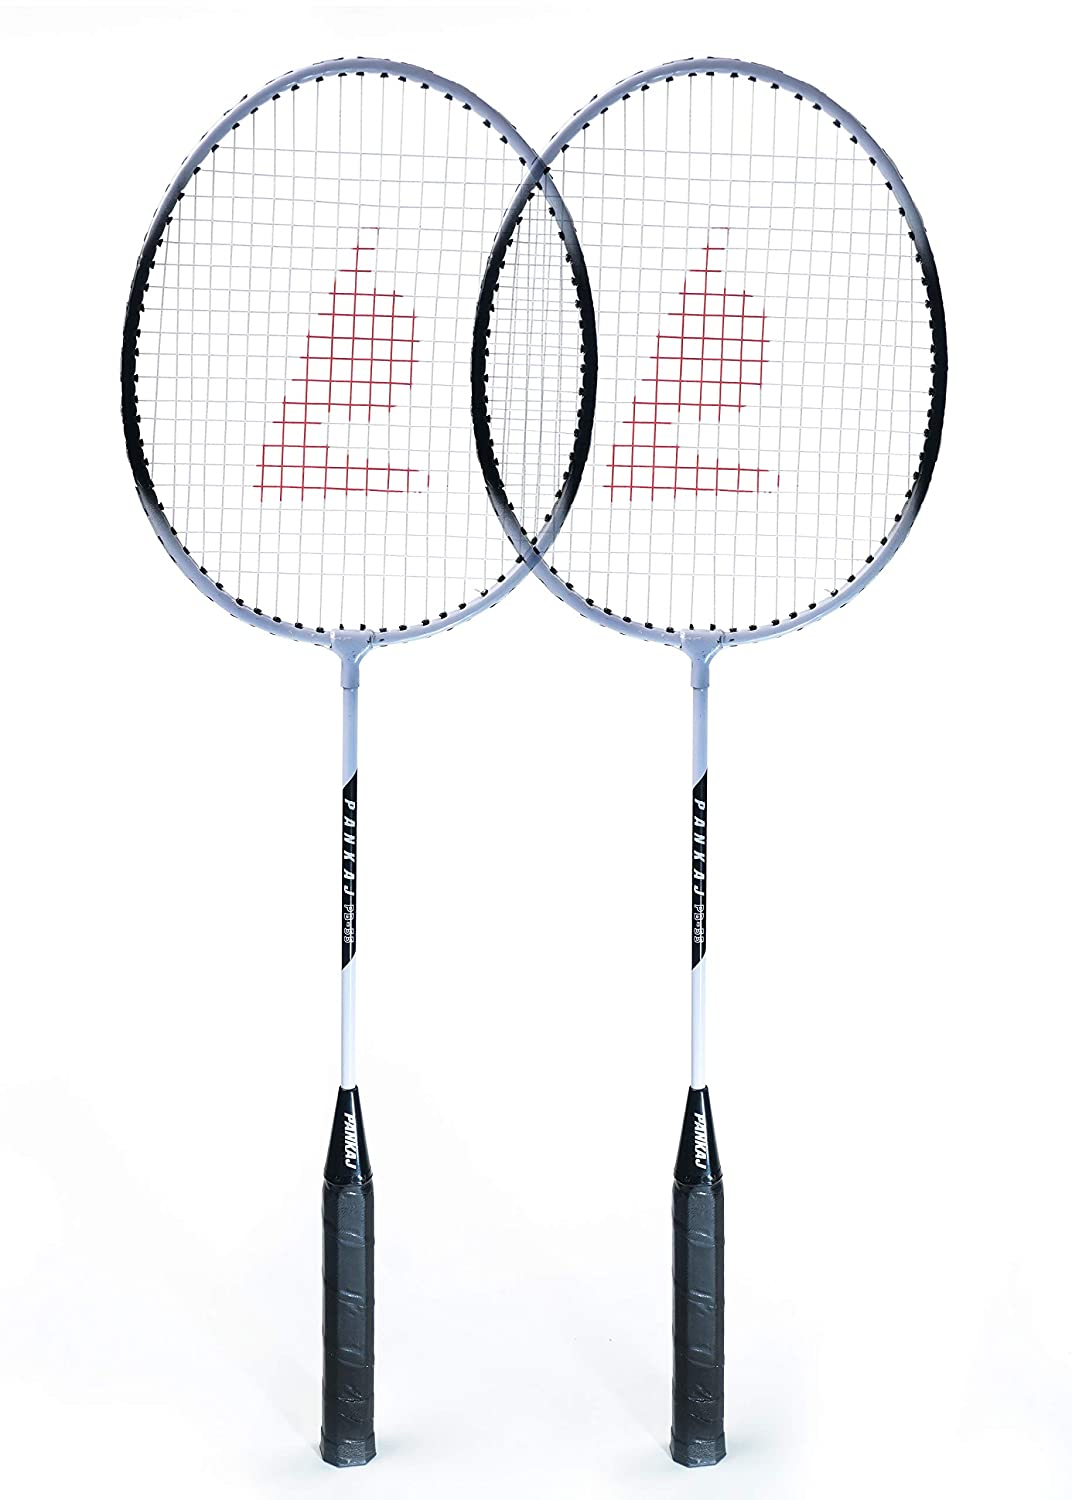 Badminton Racket - PB 55 - Pack for 2 (Black)